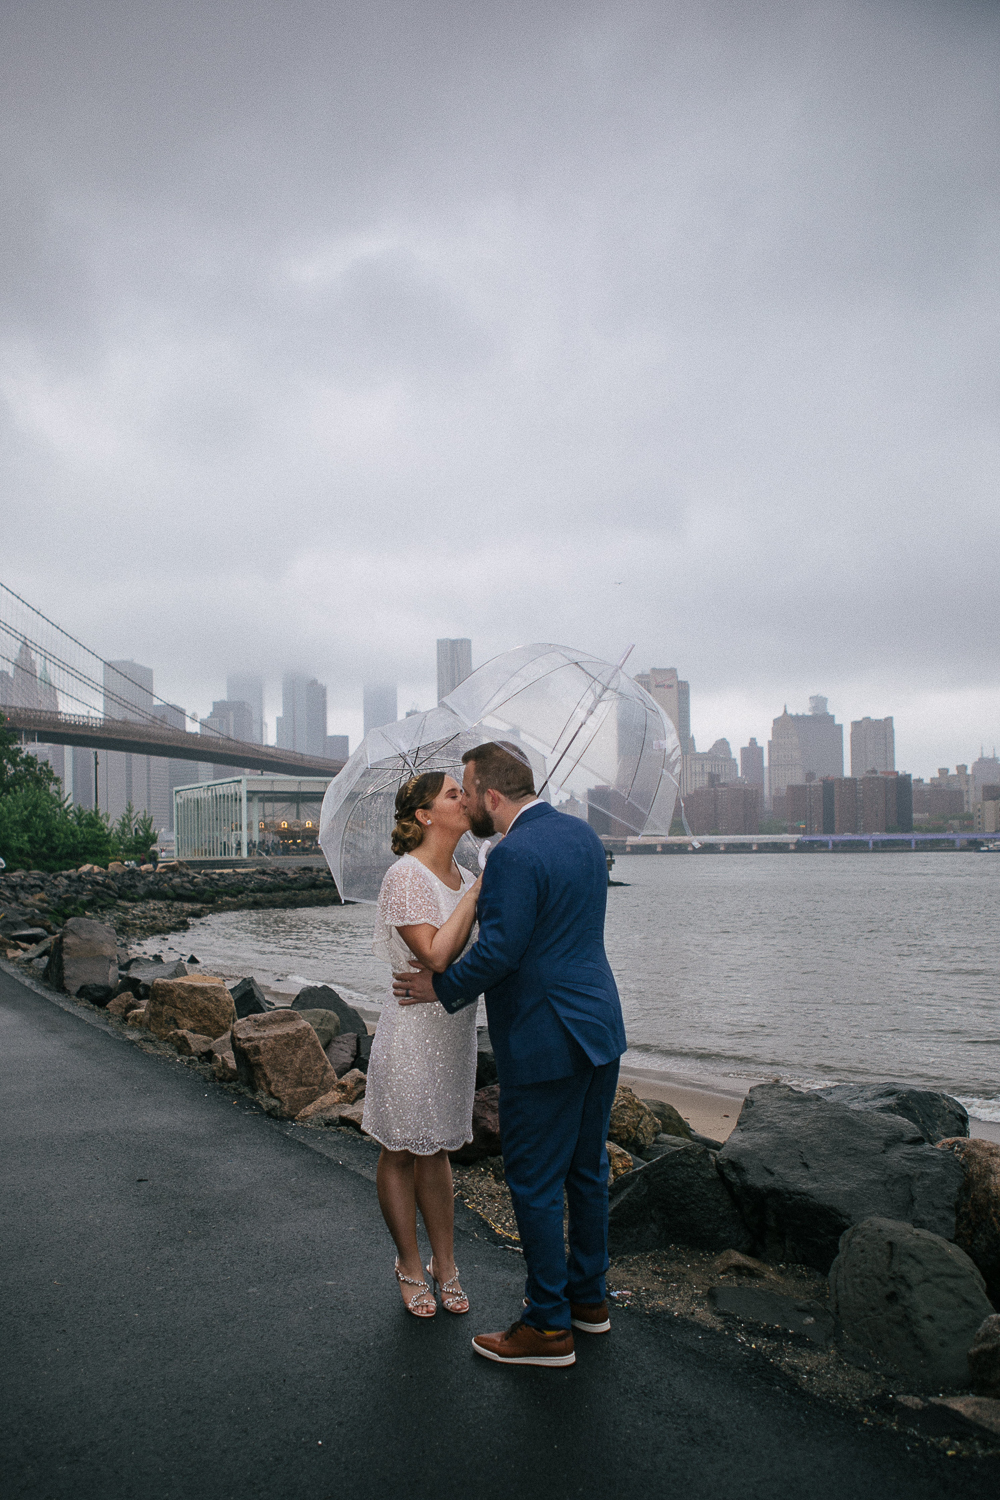 Wedding photos in front of the Brooklyn Bridge. New York Bride in a short wedding dress and groom in a blue suit with clear plastic umbrellas kiss in the rain. | Intimate Wedding at the Malthouse in Manhattan, New York City.